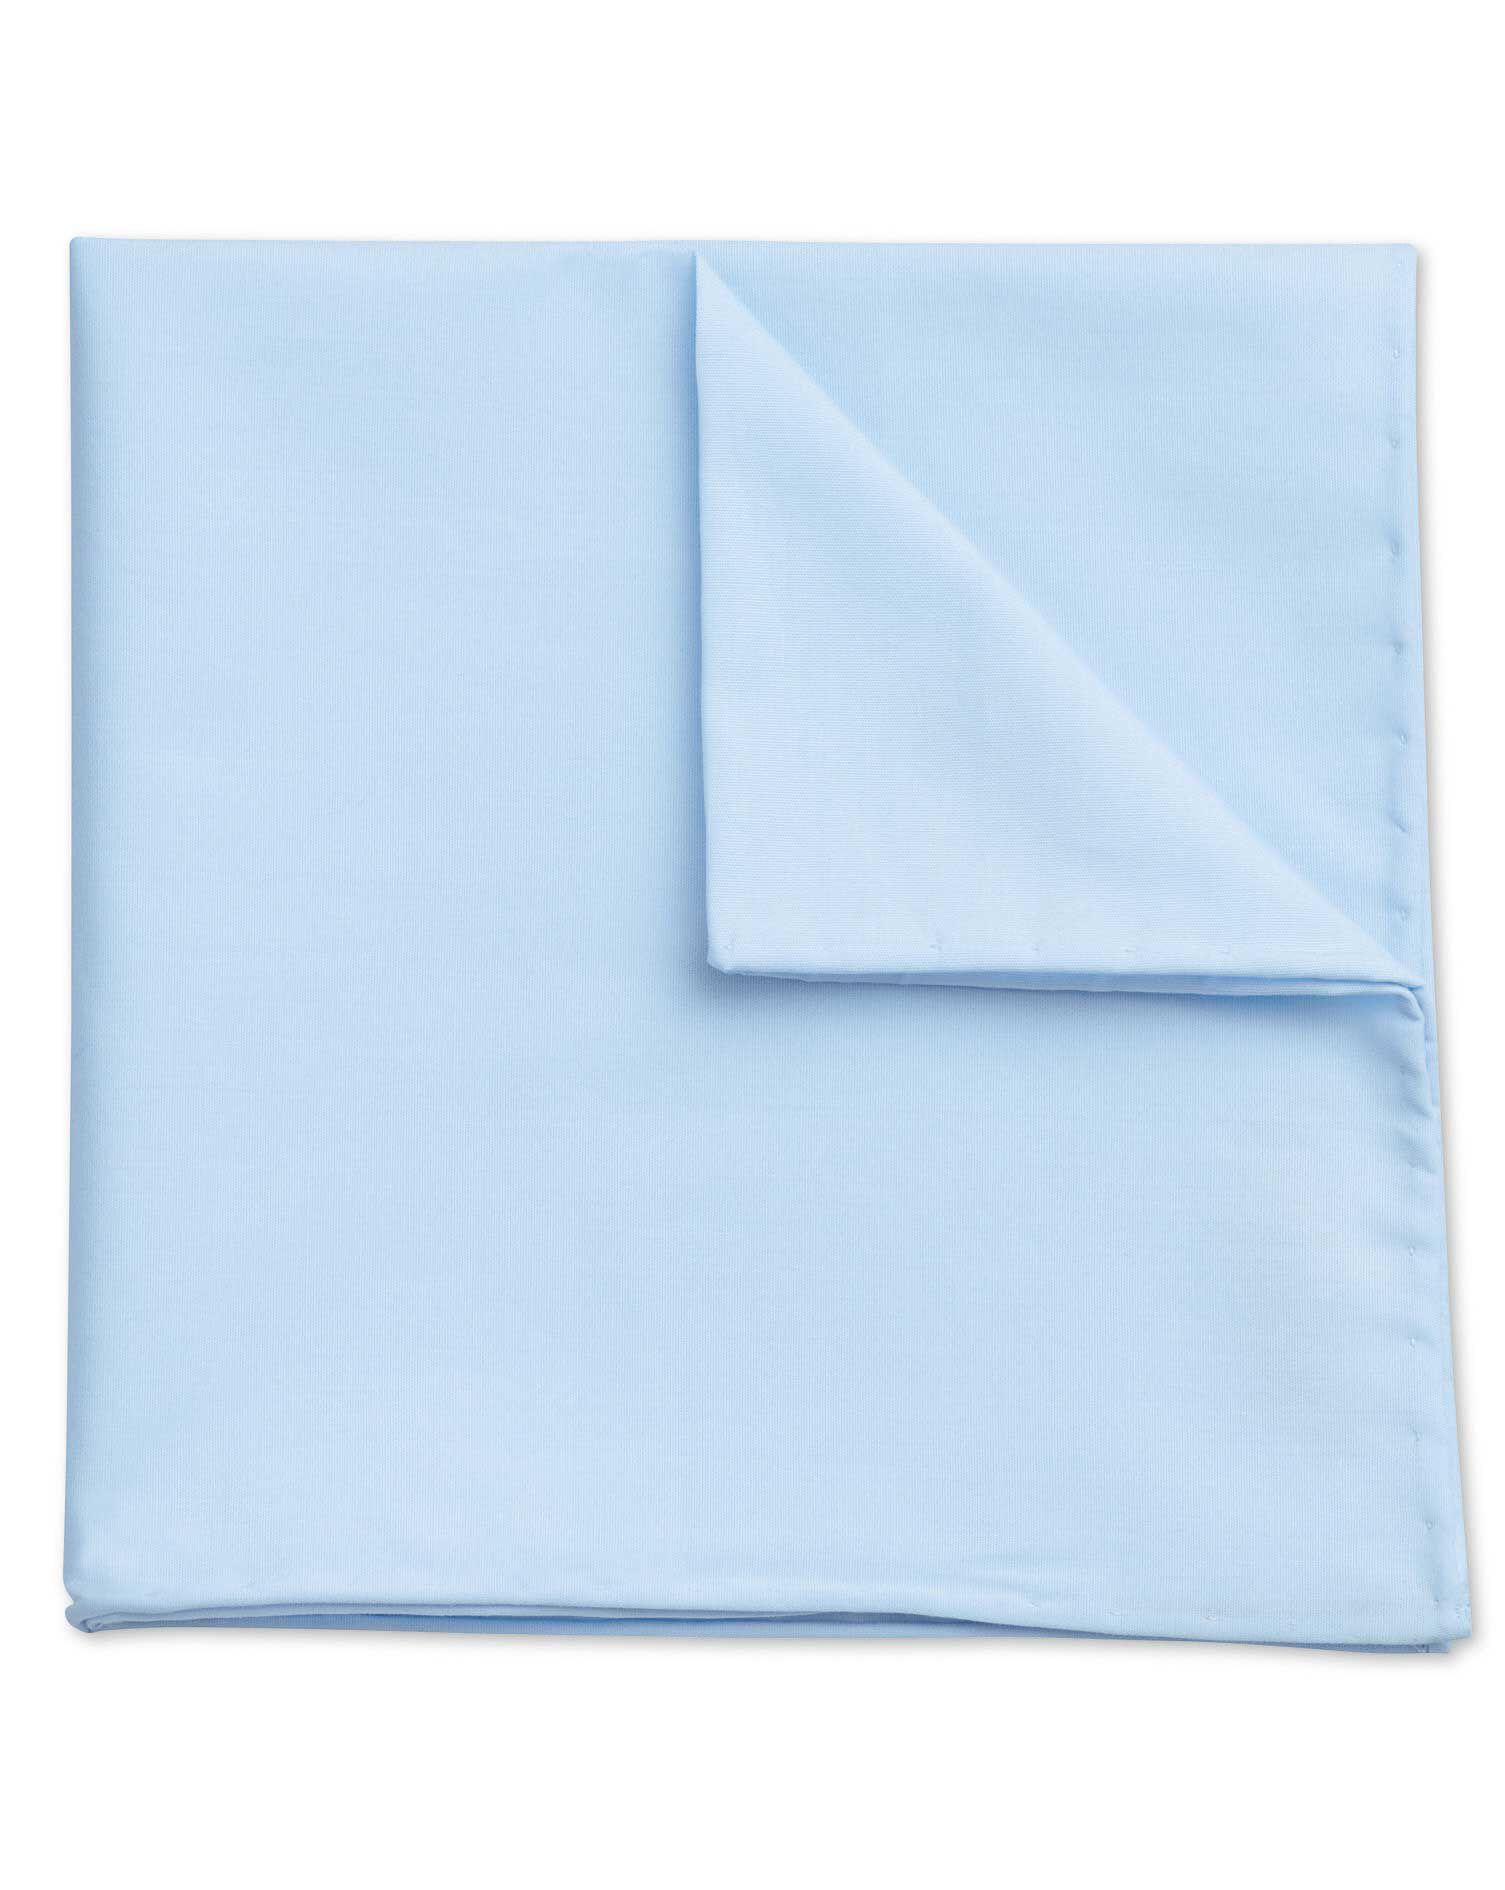 Sky Classic Plain Cotton Pocket Square Size OSFA by Charles Tyrwhitt